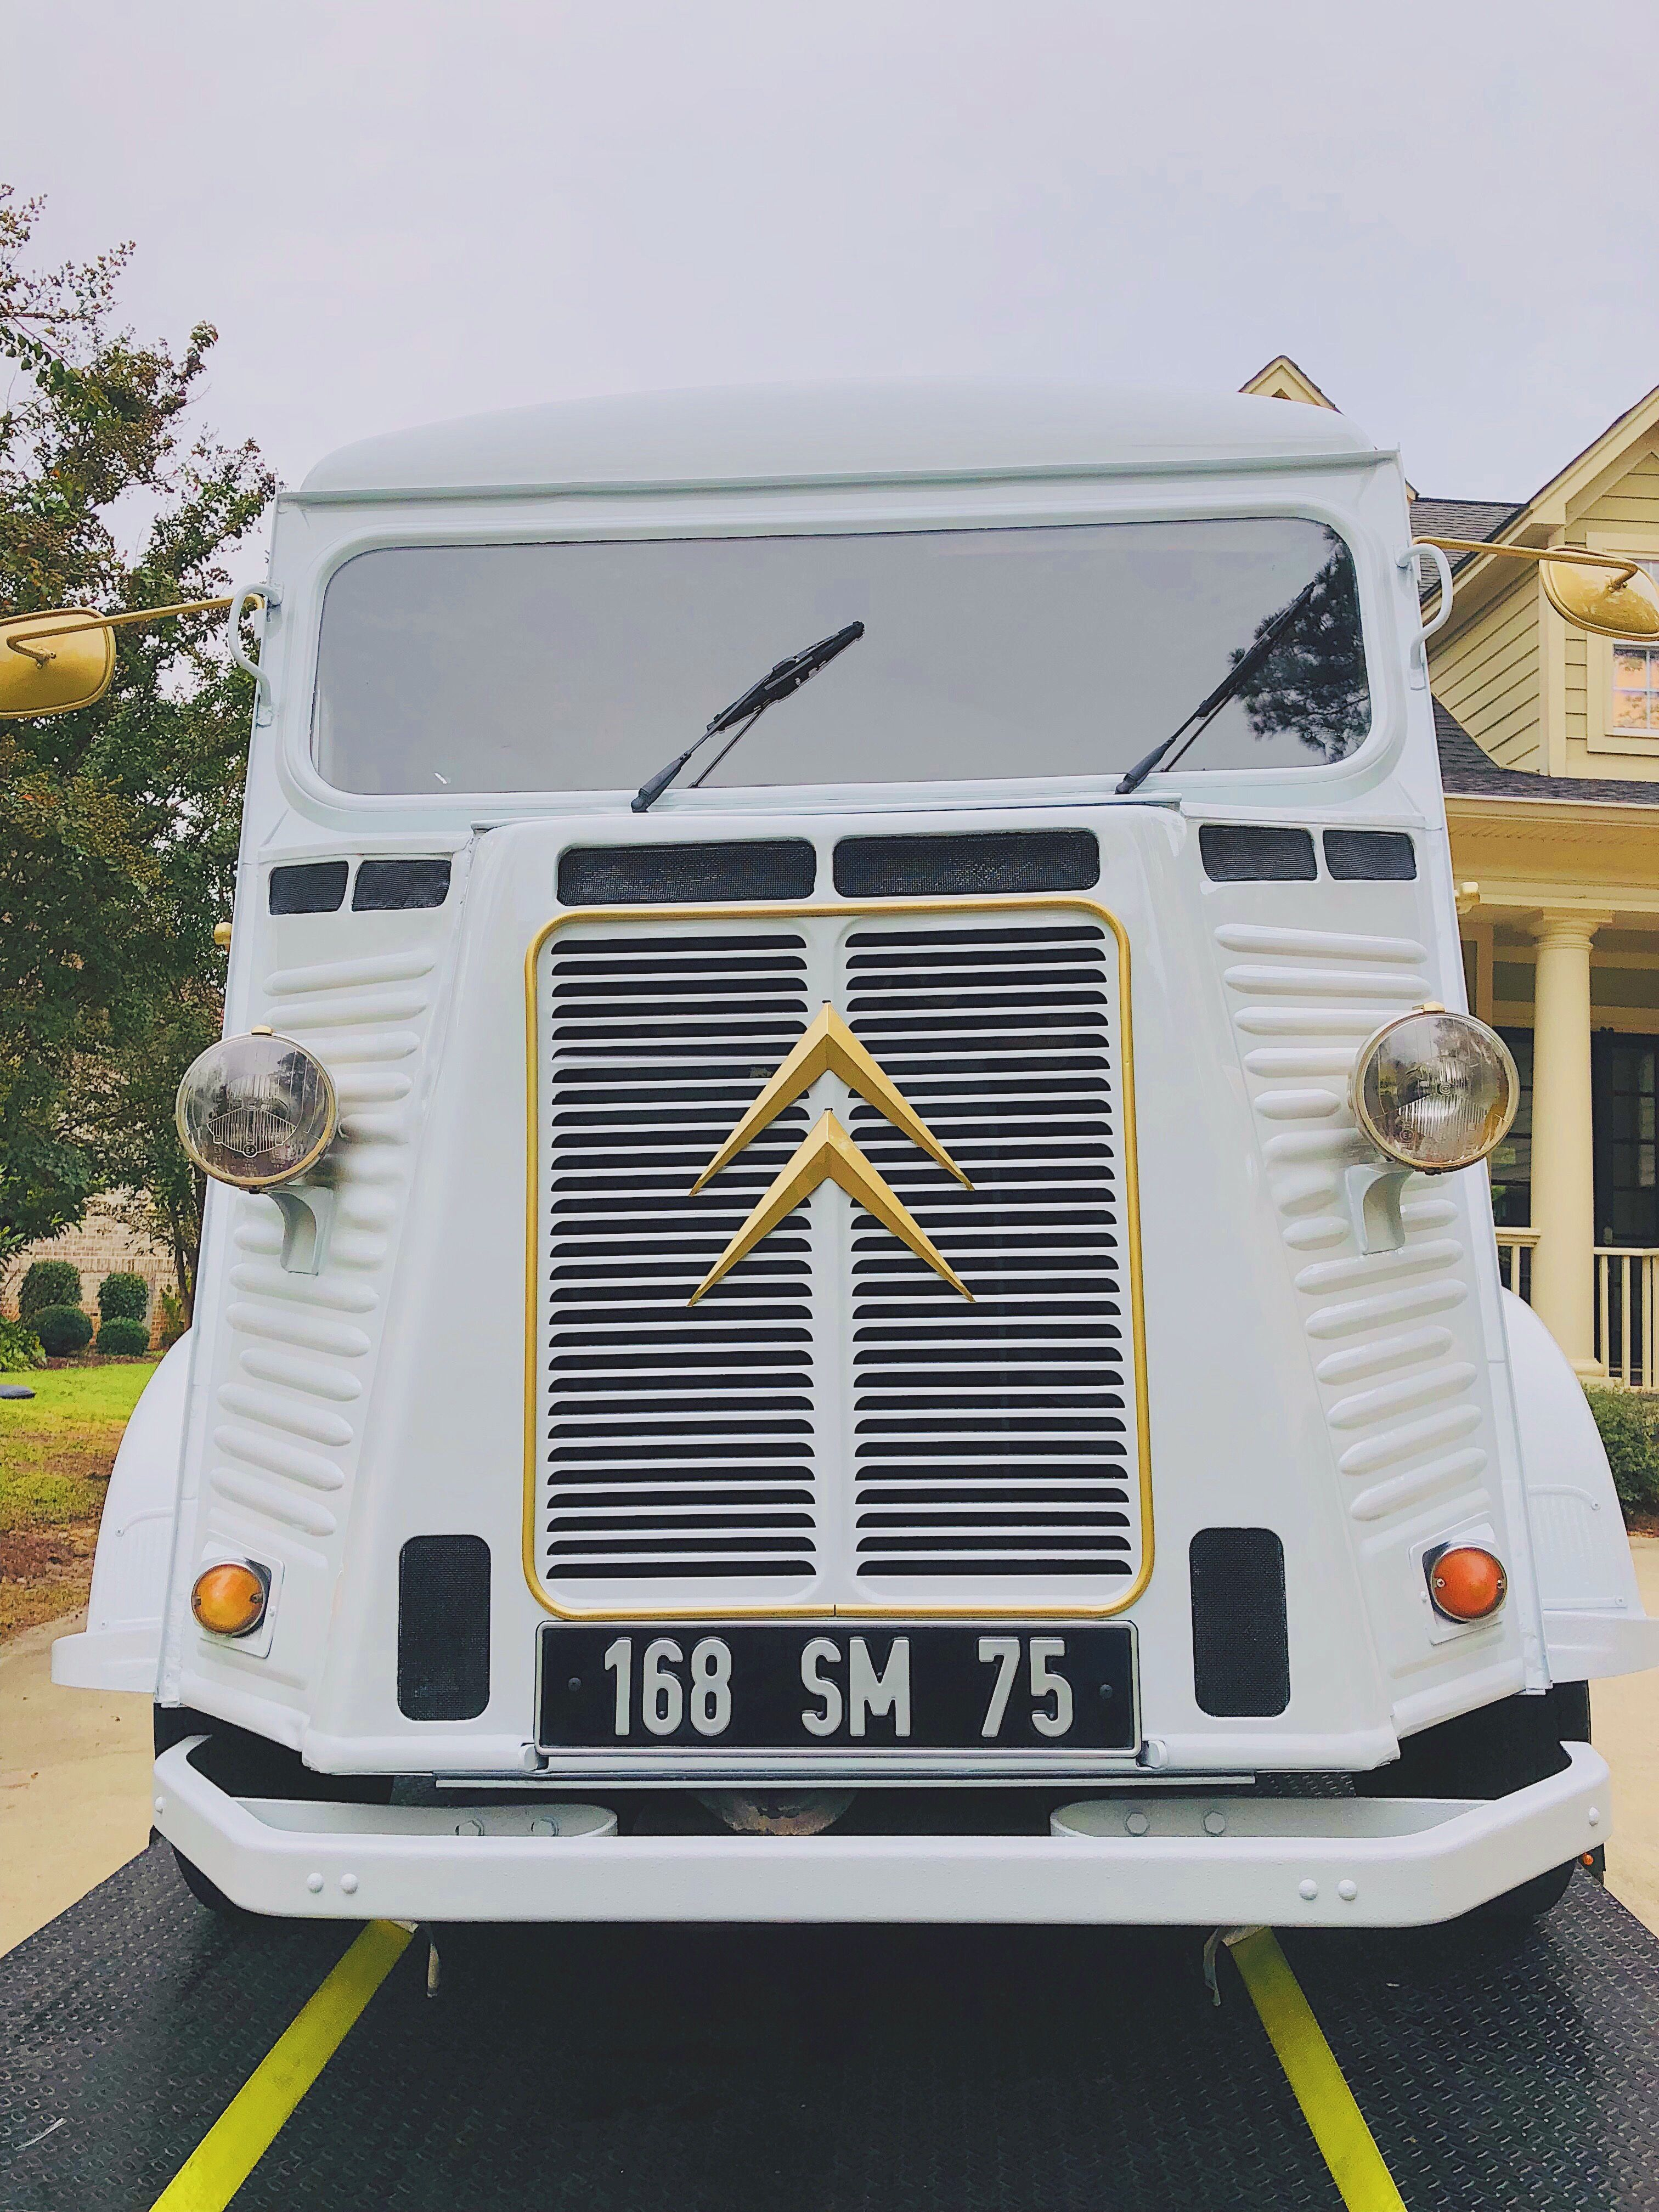 The Benton is a 1961 Citroën HY Van!